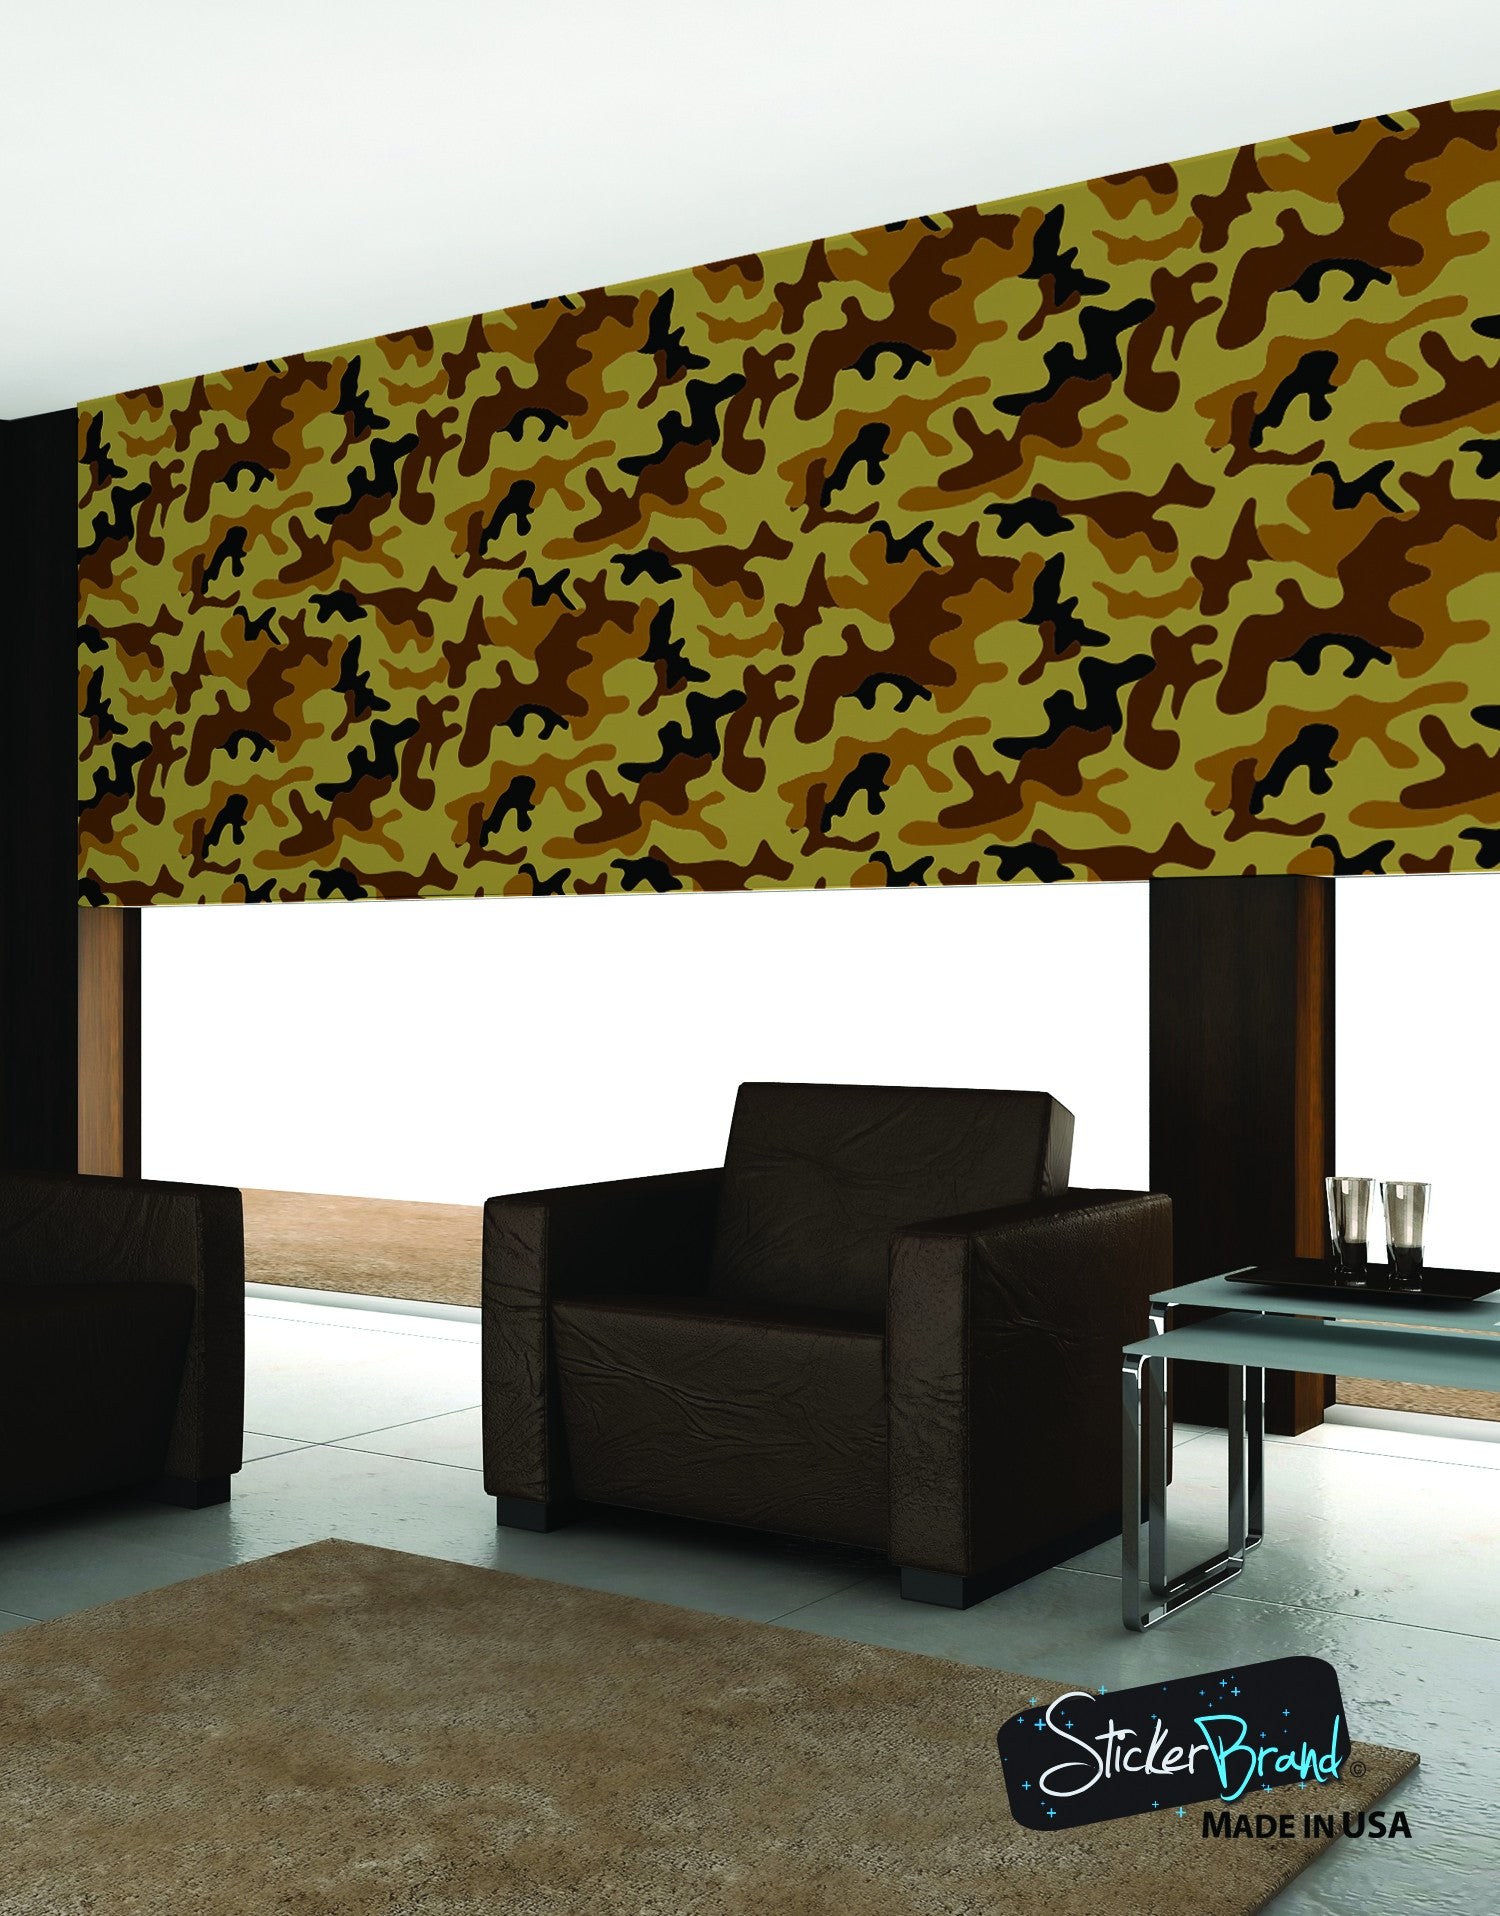 Desert brown military camo camouflage wall mural 6062 for Camouflage wall mural